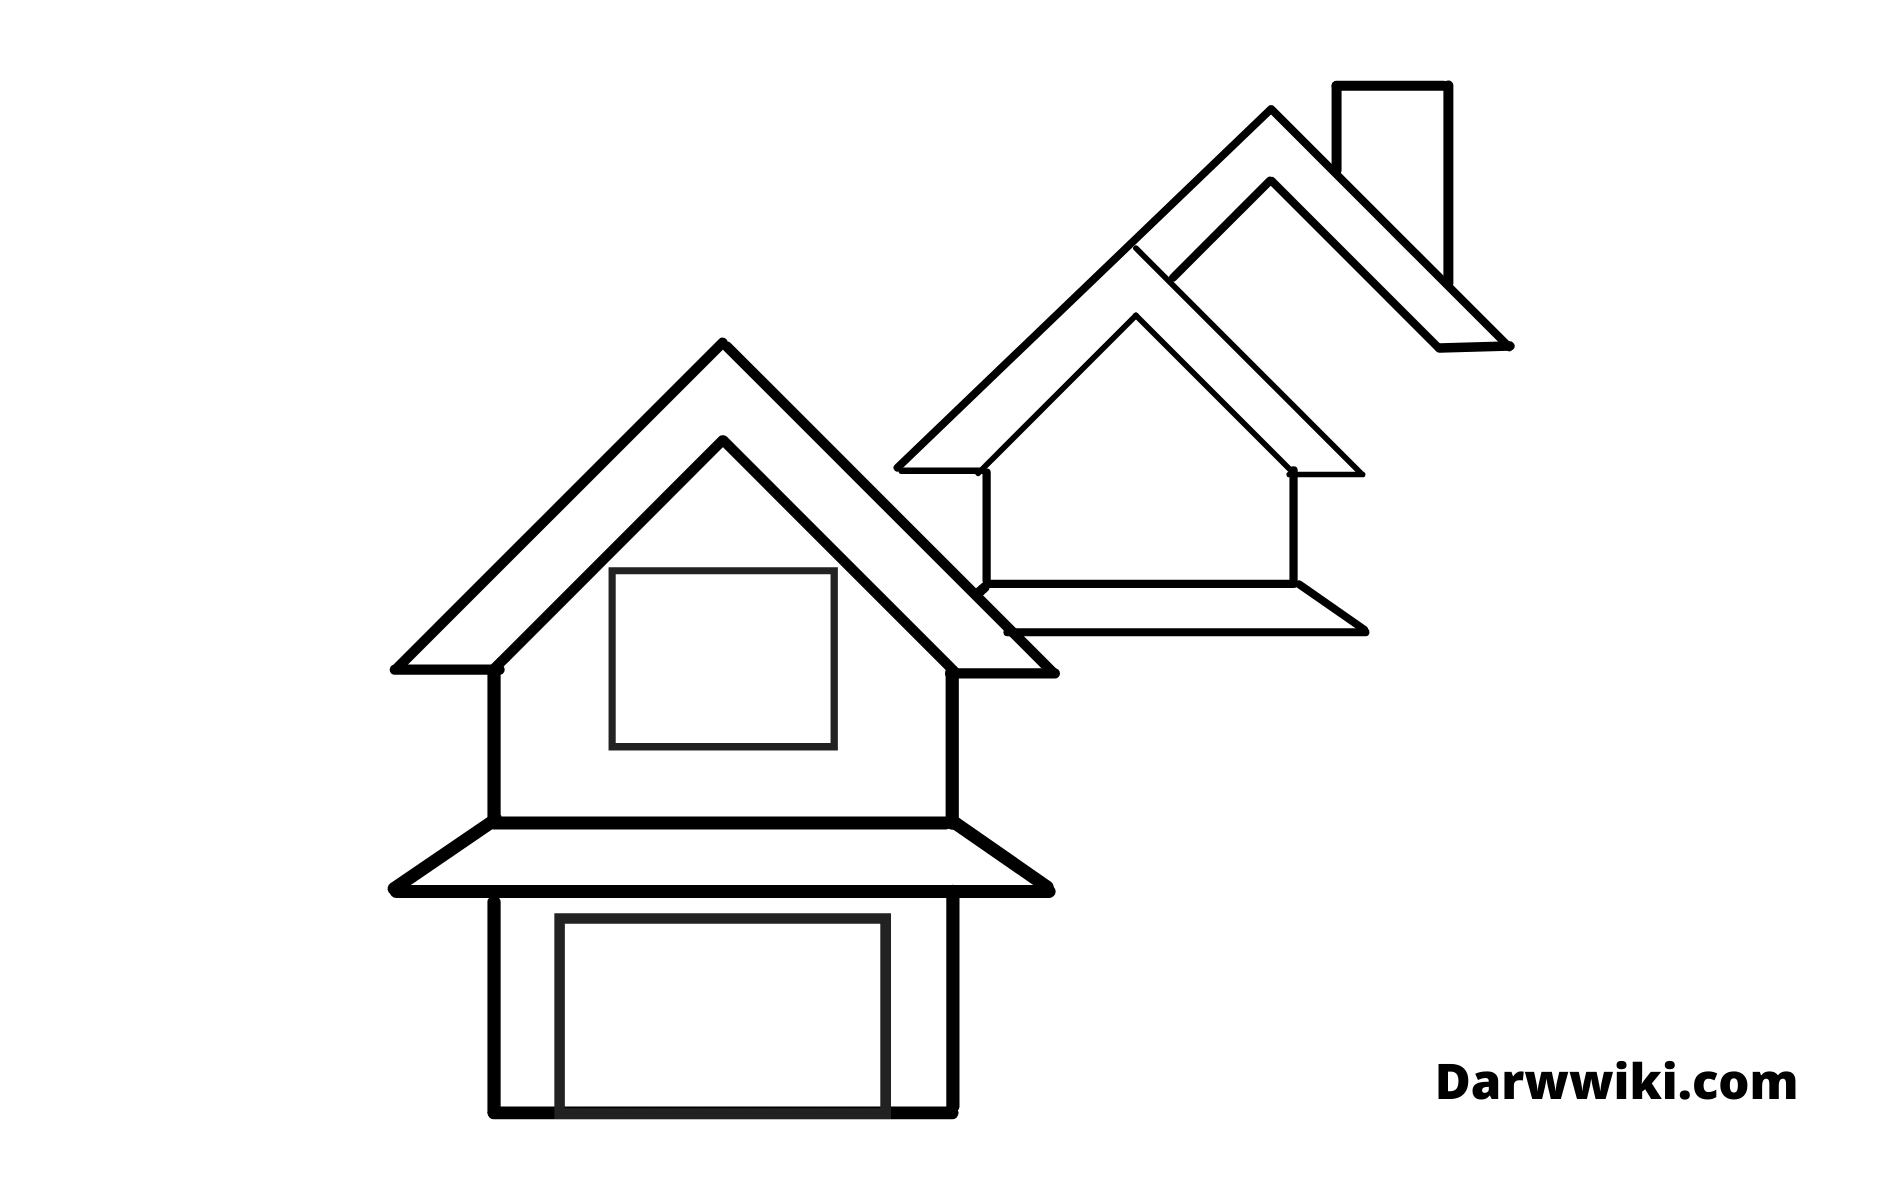 How to draw house Step 5 - Draw thirds Part of the House Roof